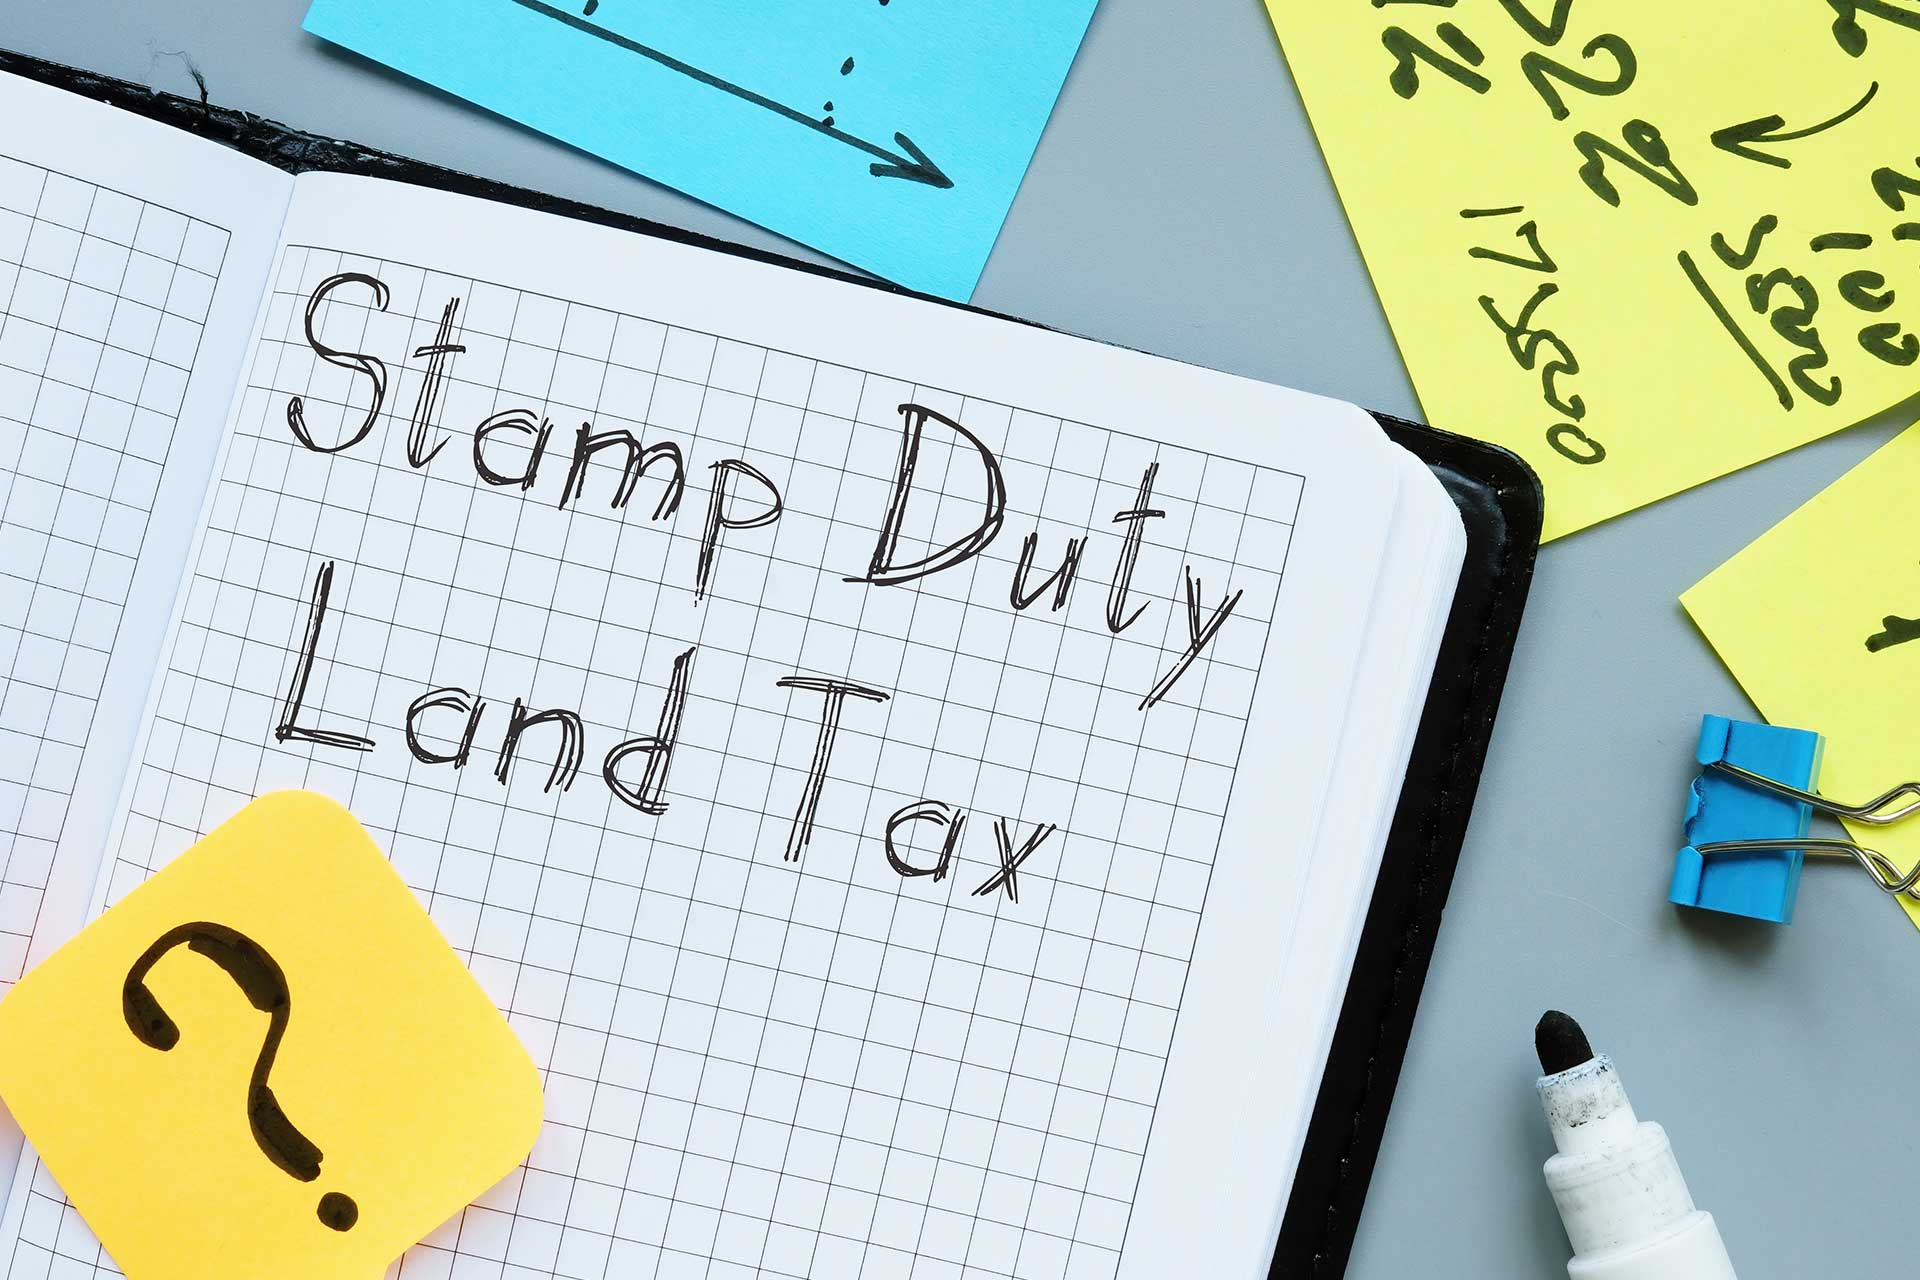 Stamp Duty holiday - how does it affect you?